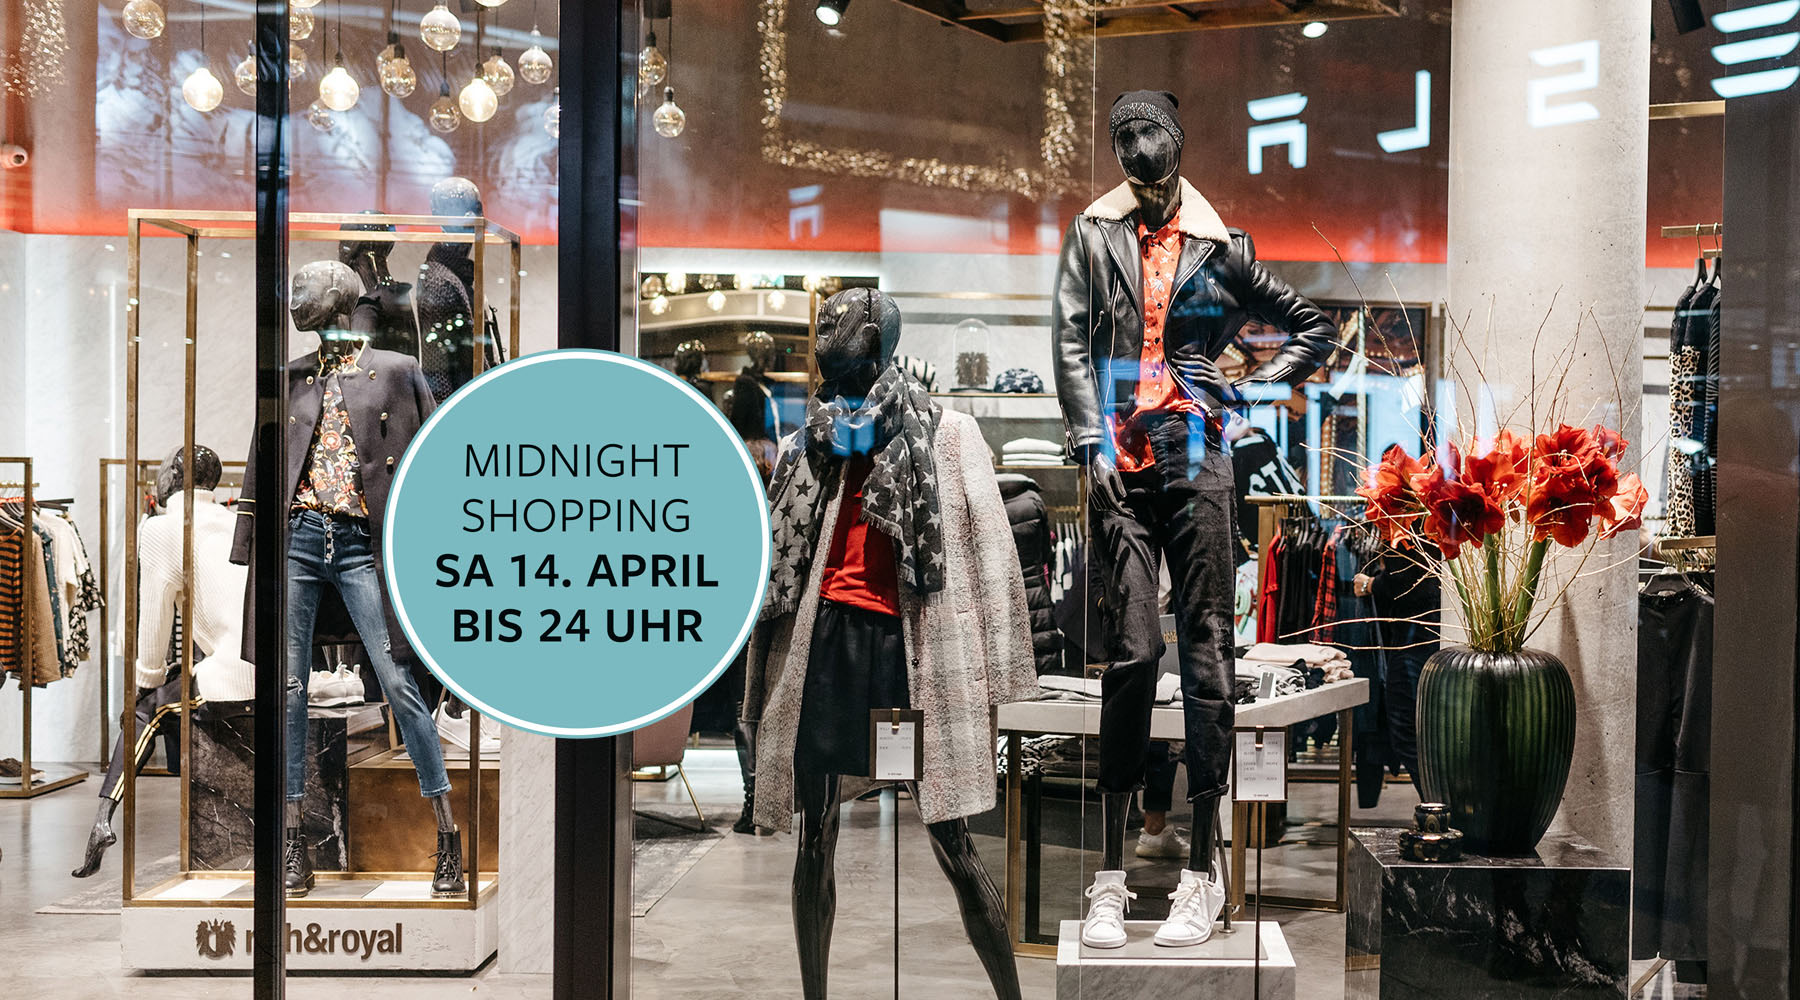 midnight shopping bis 24 uhr dorotheen quartier shopping essen trinken in stuttgart. Black Bedroom Furniture Sets. Home Design Ideas